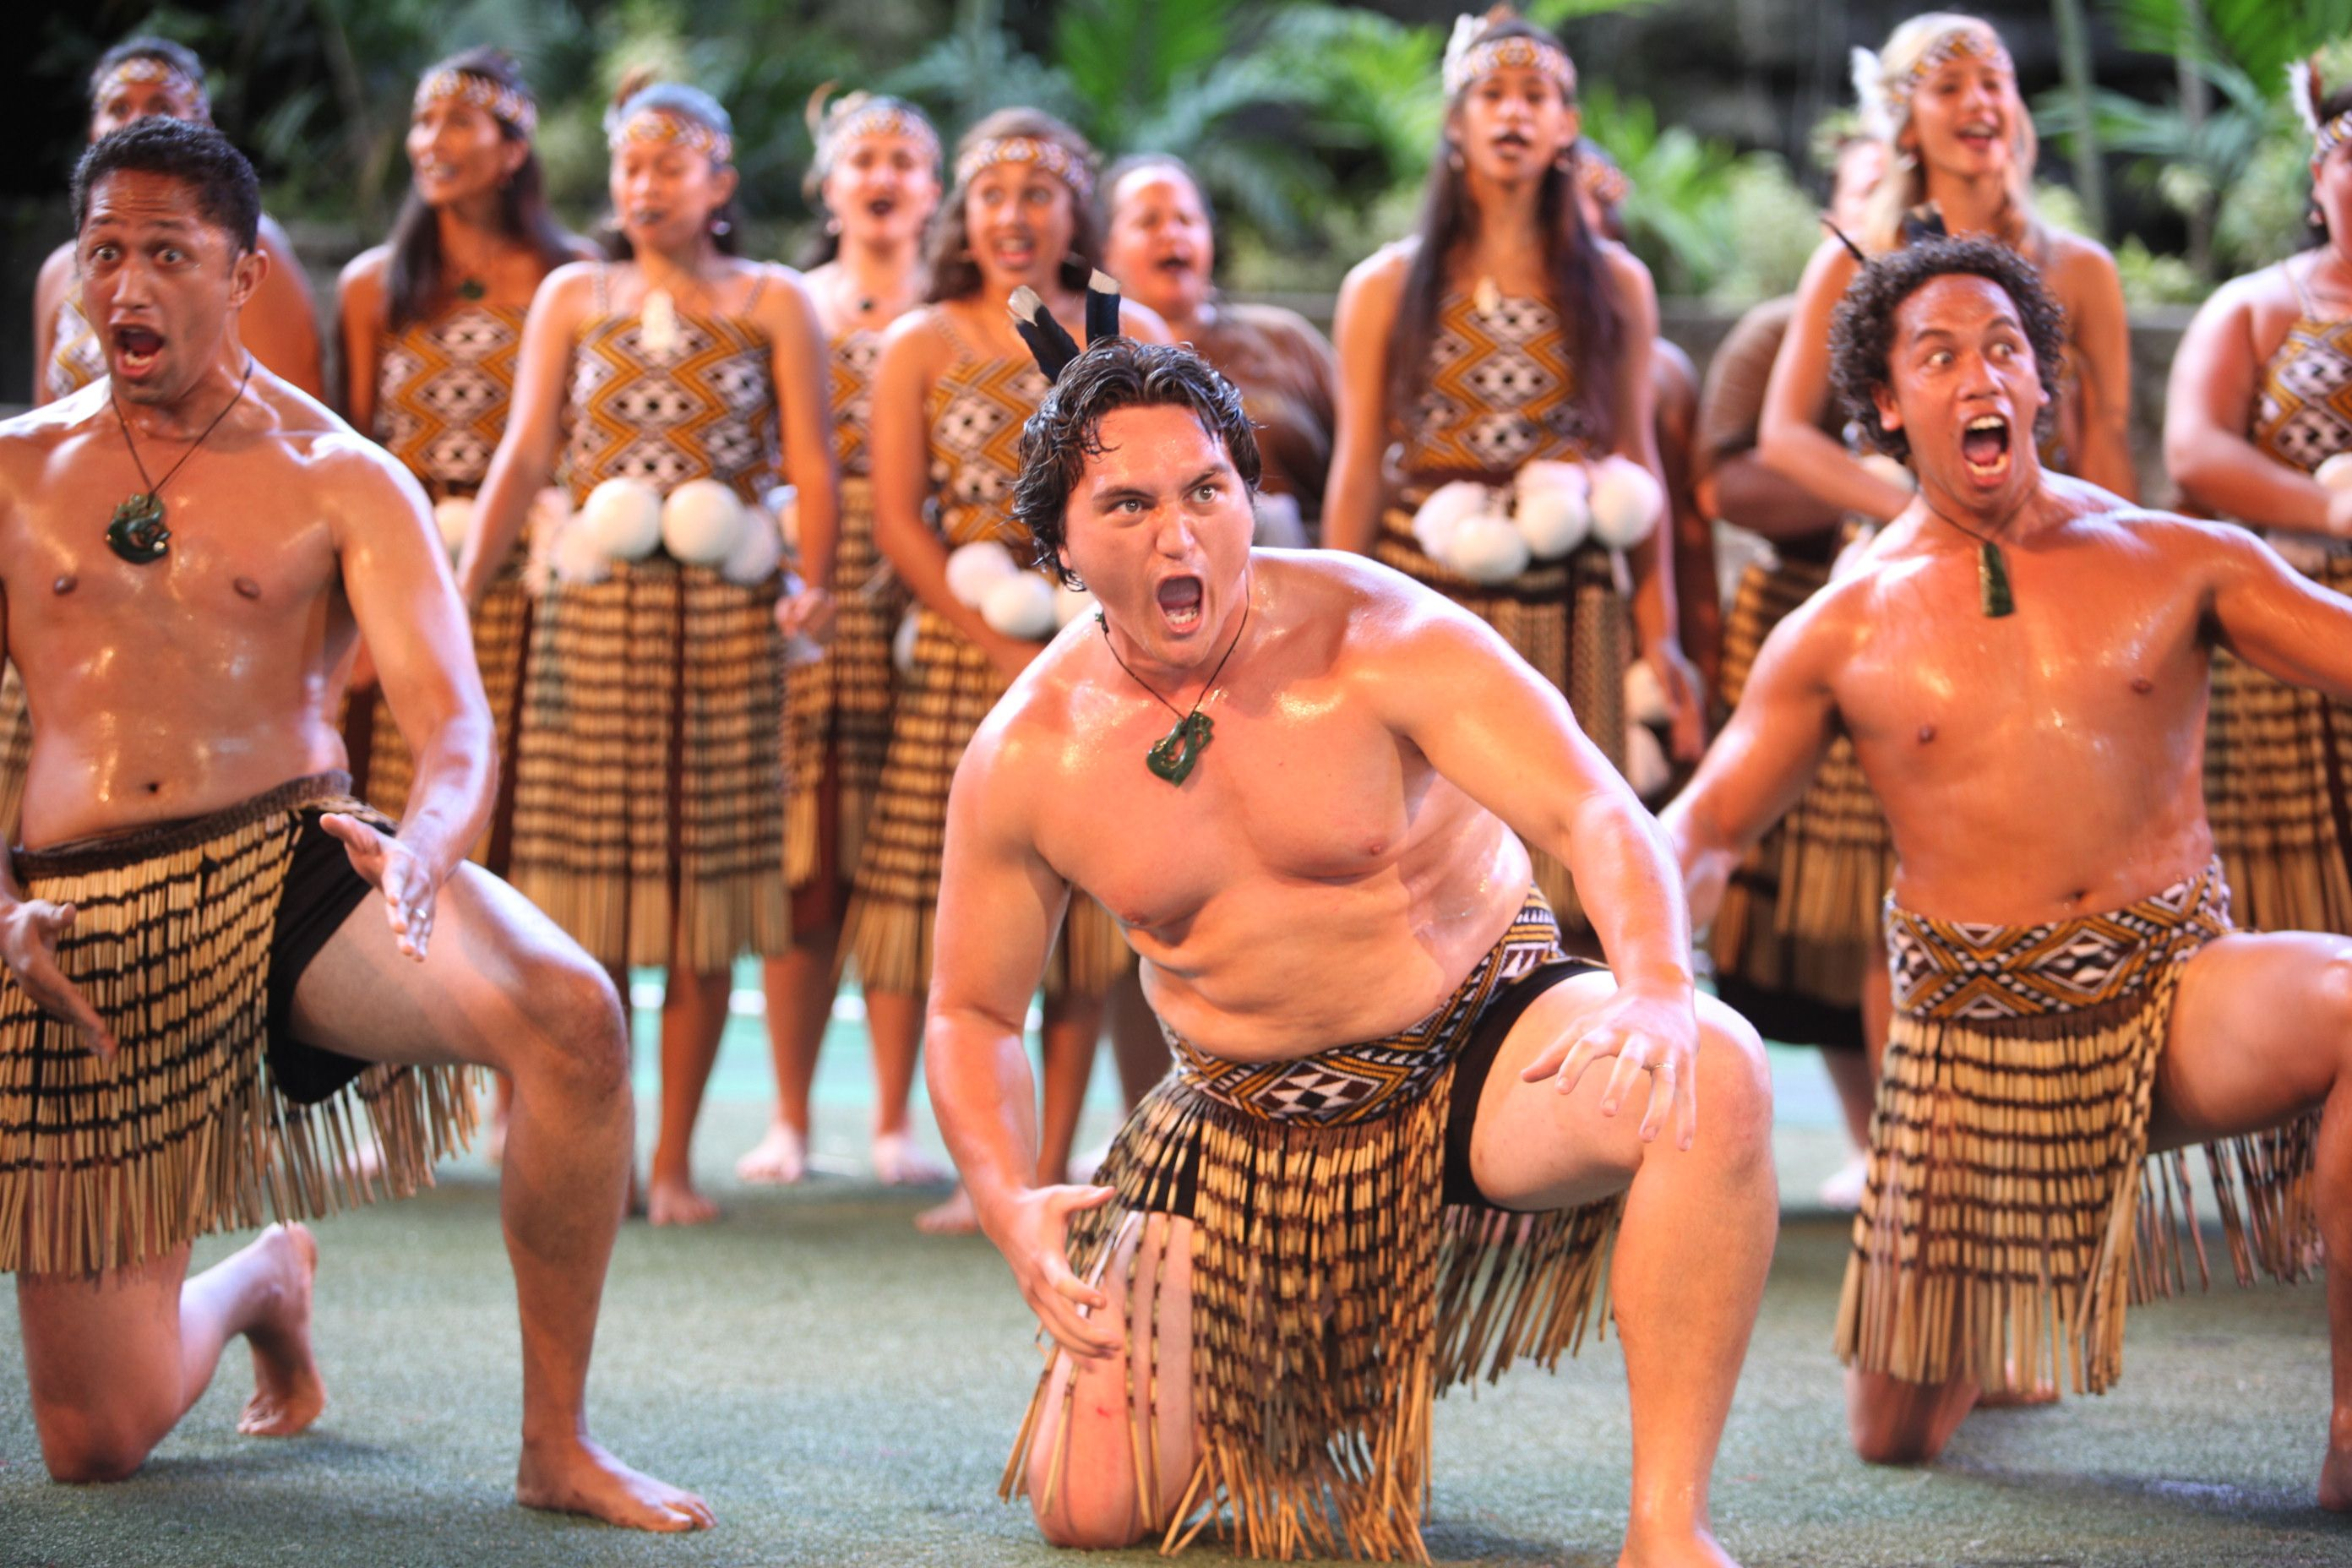 Maori Natives: Indigenous Polynesian People Of New